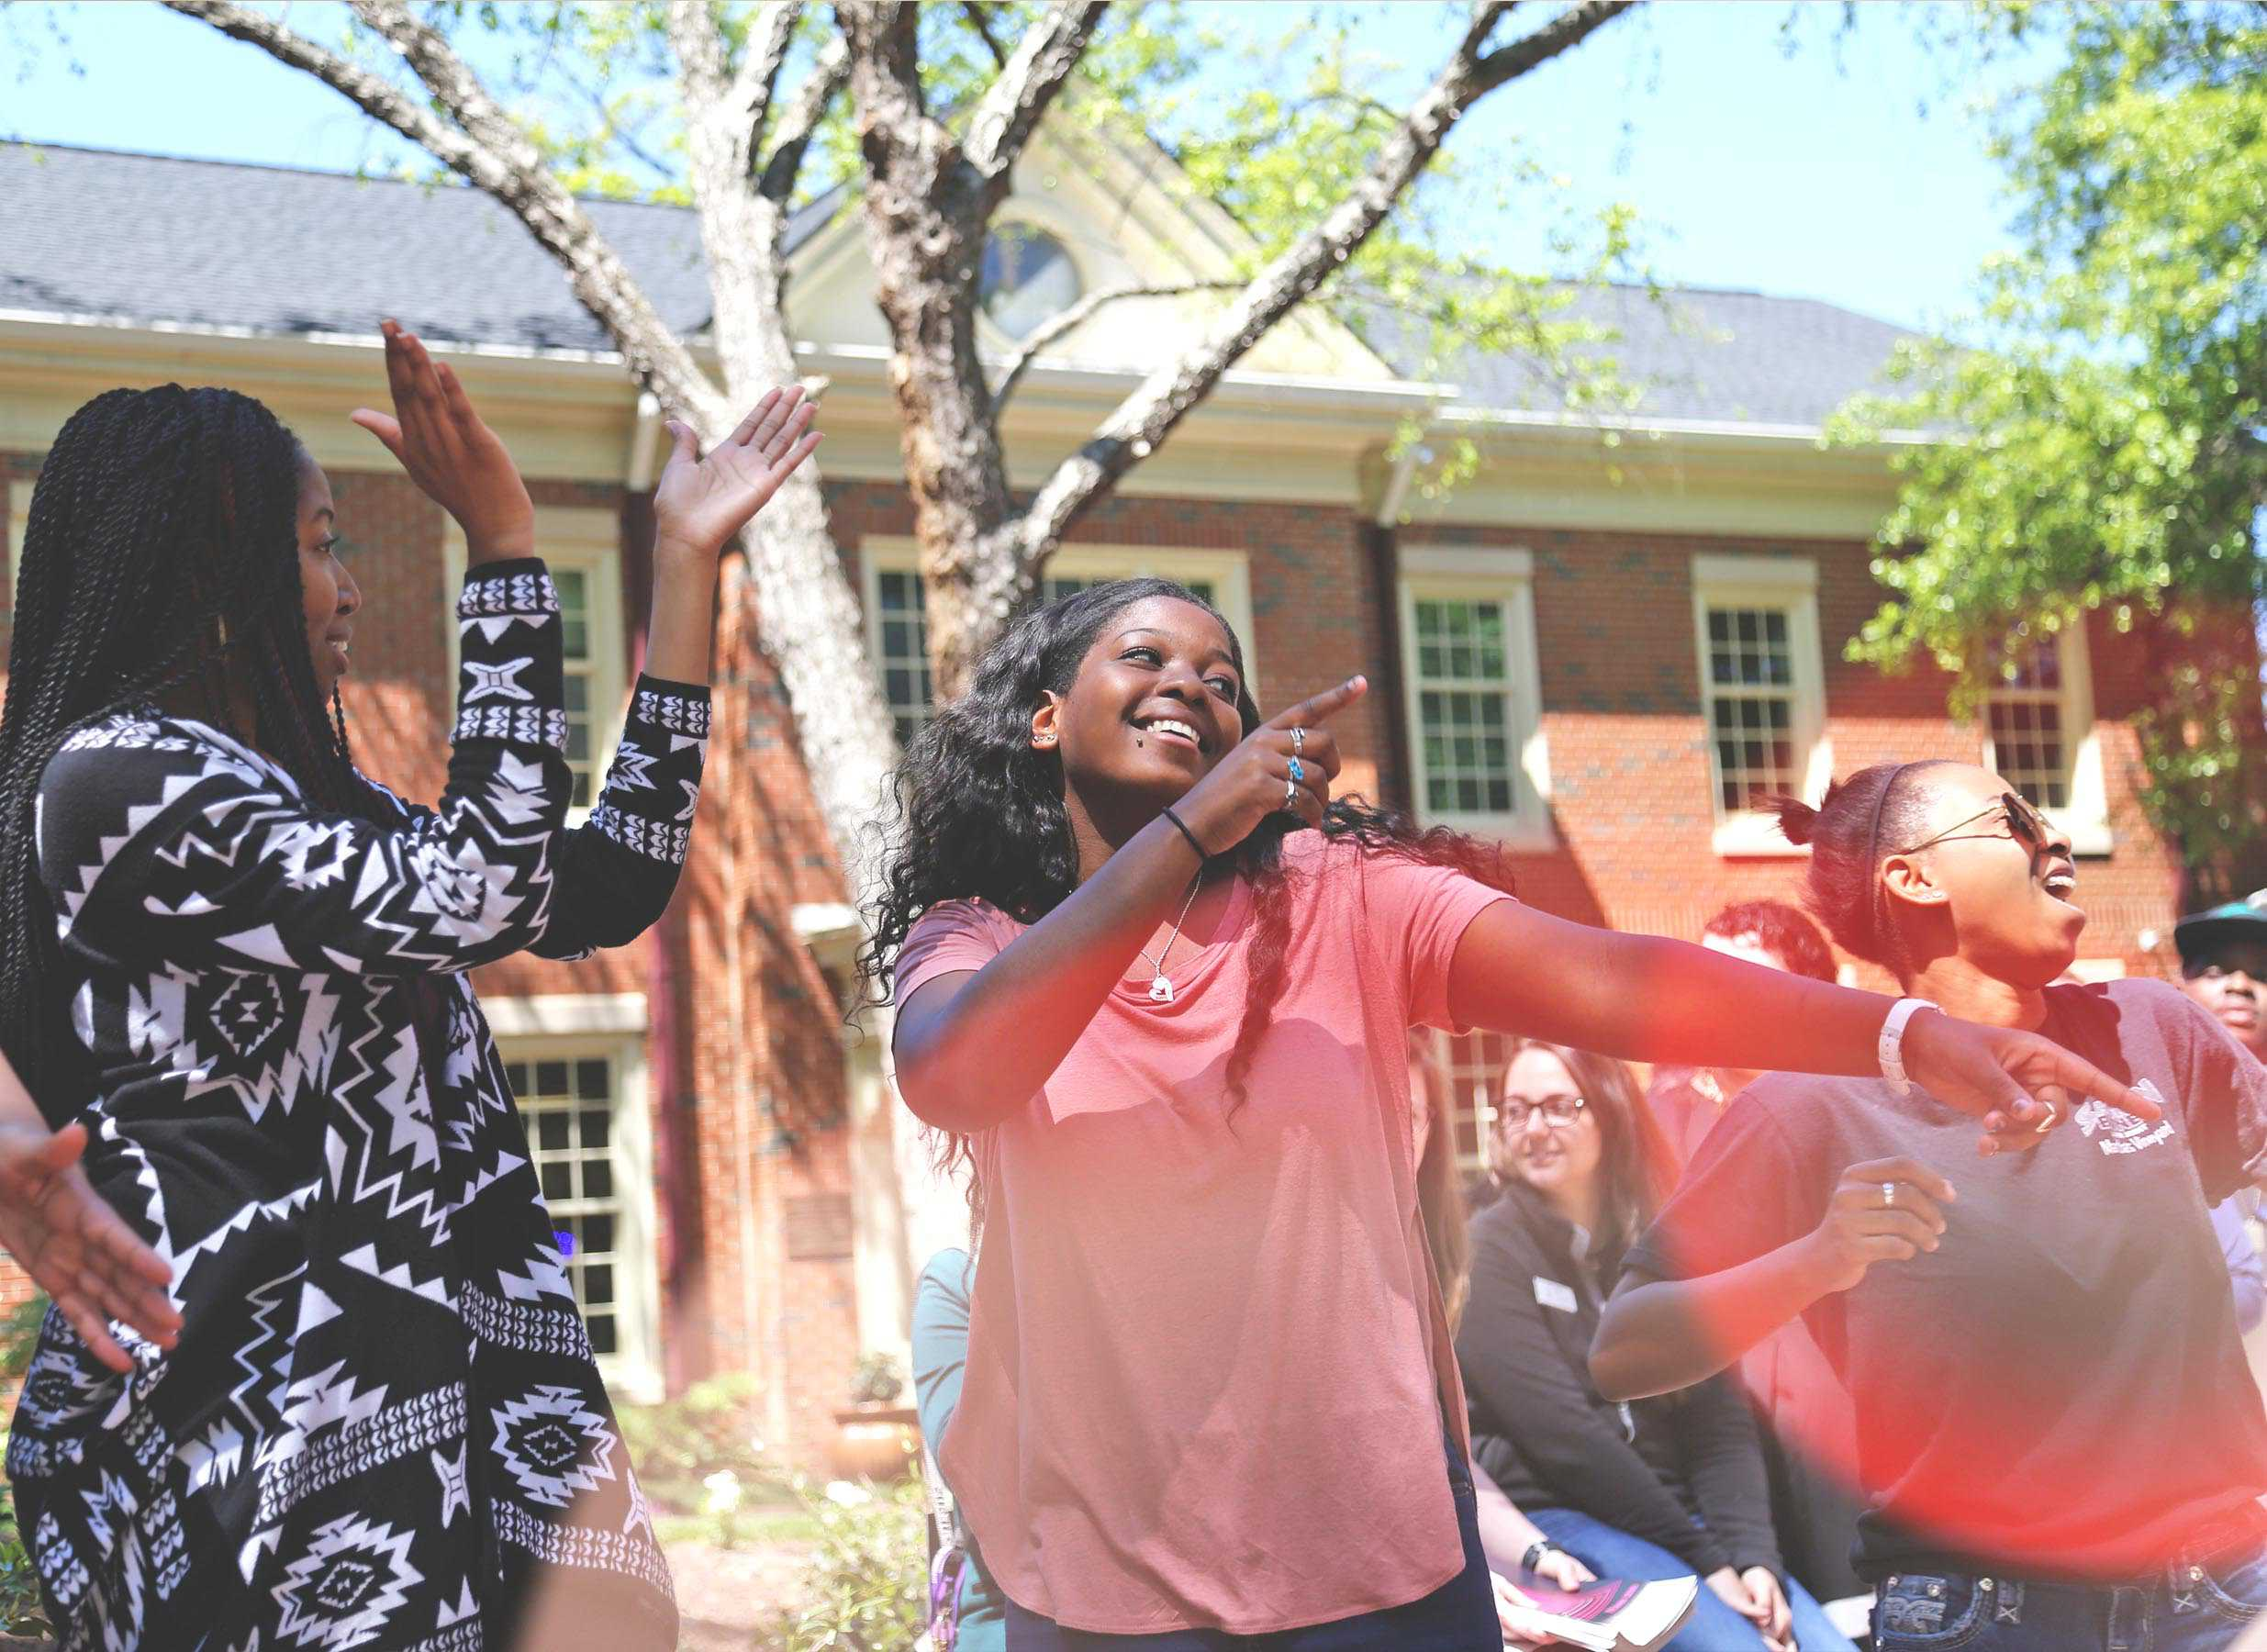 WPU Students singing and dancing on campus.